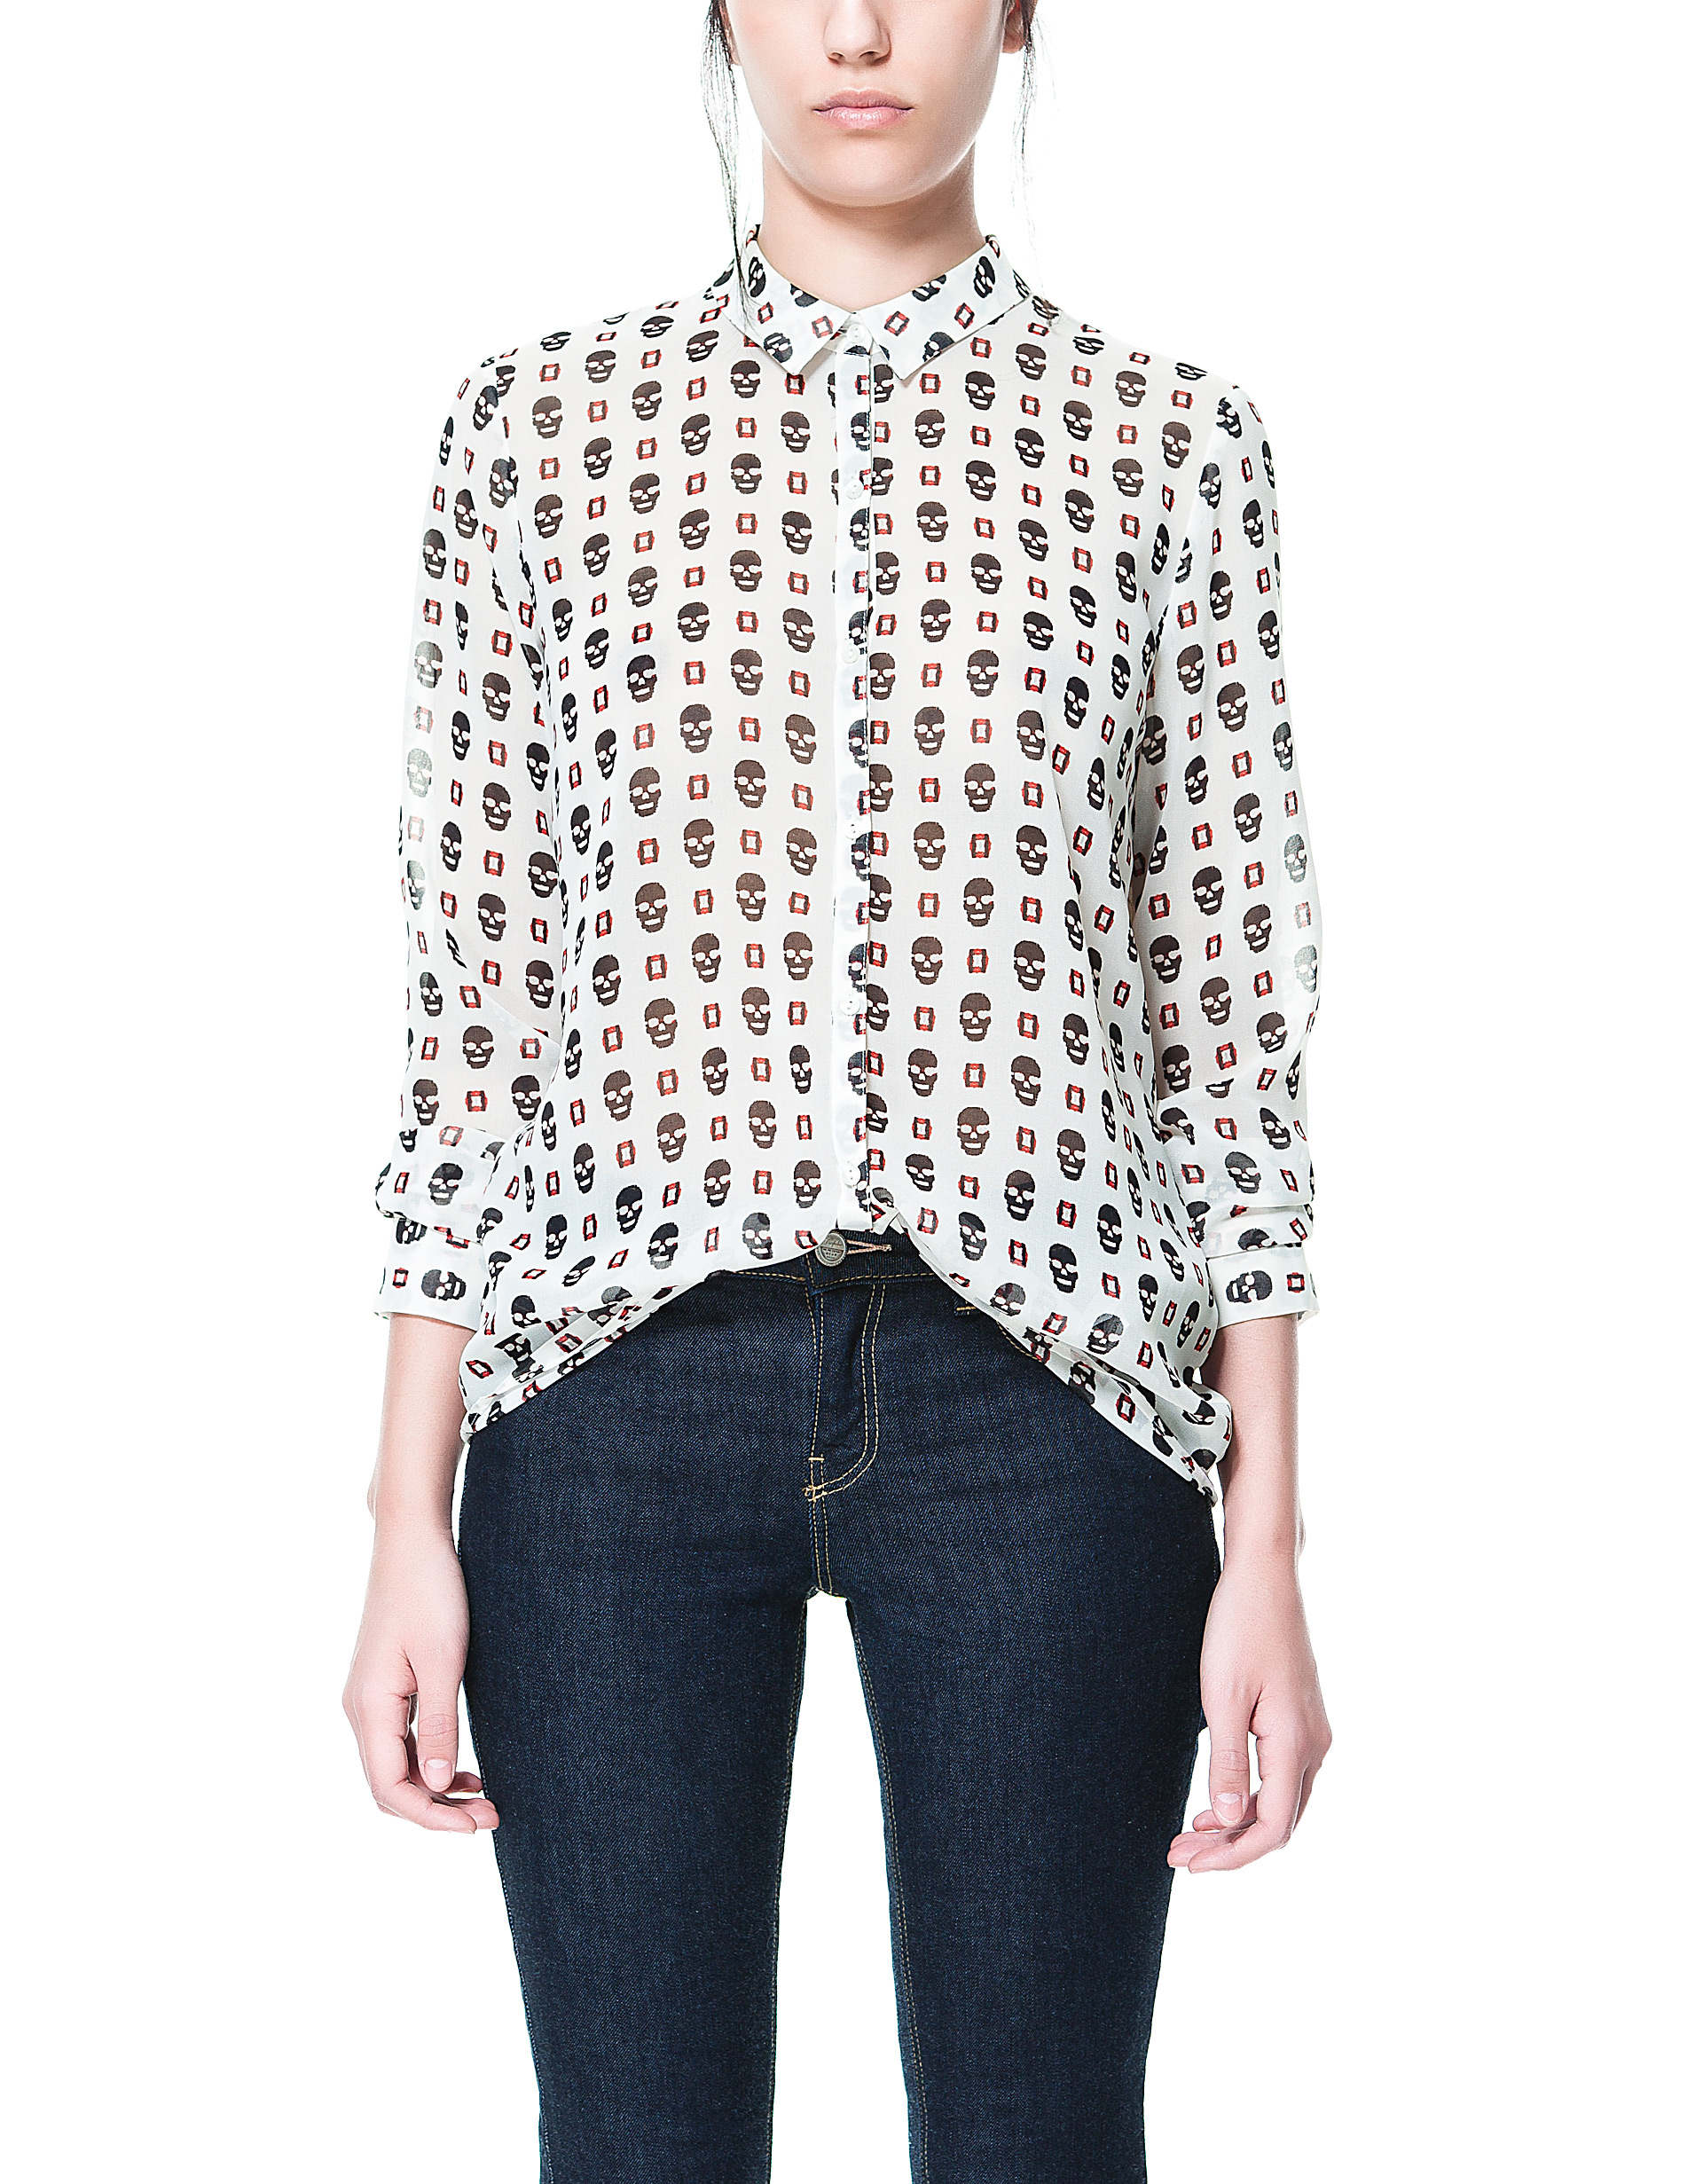 Women's Blouses with Skull Prints, Current Fashion Models